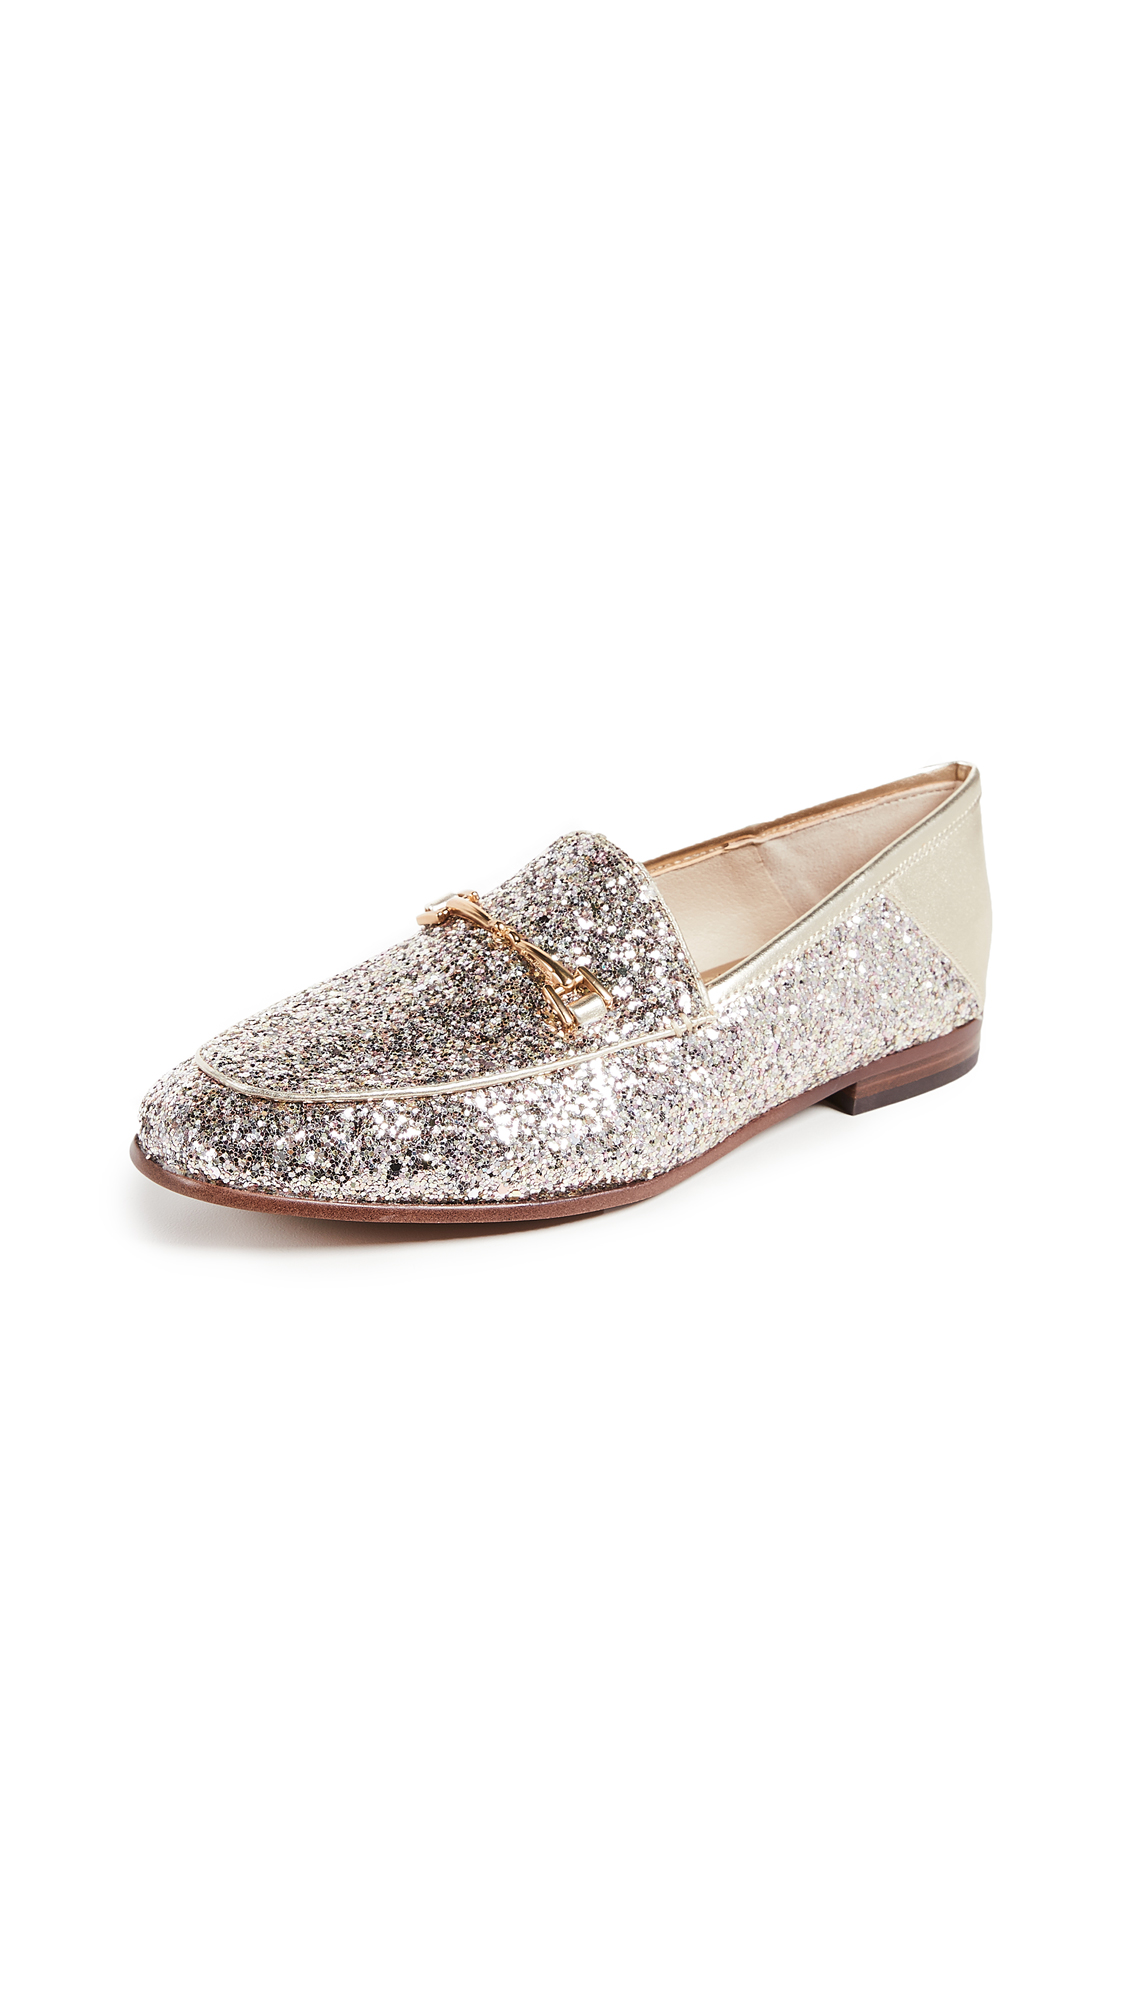 Sam Edelman Loraine Loafers - Molten Gold